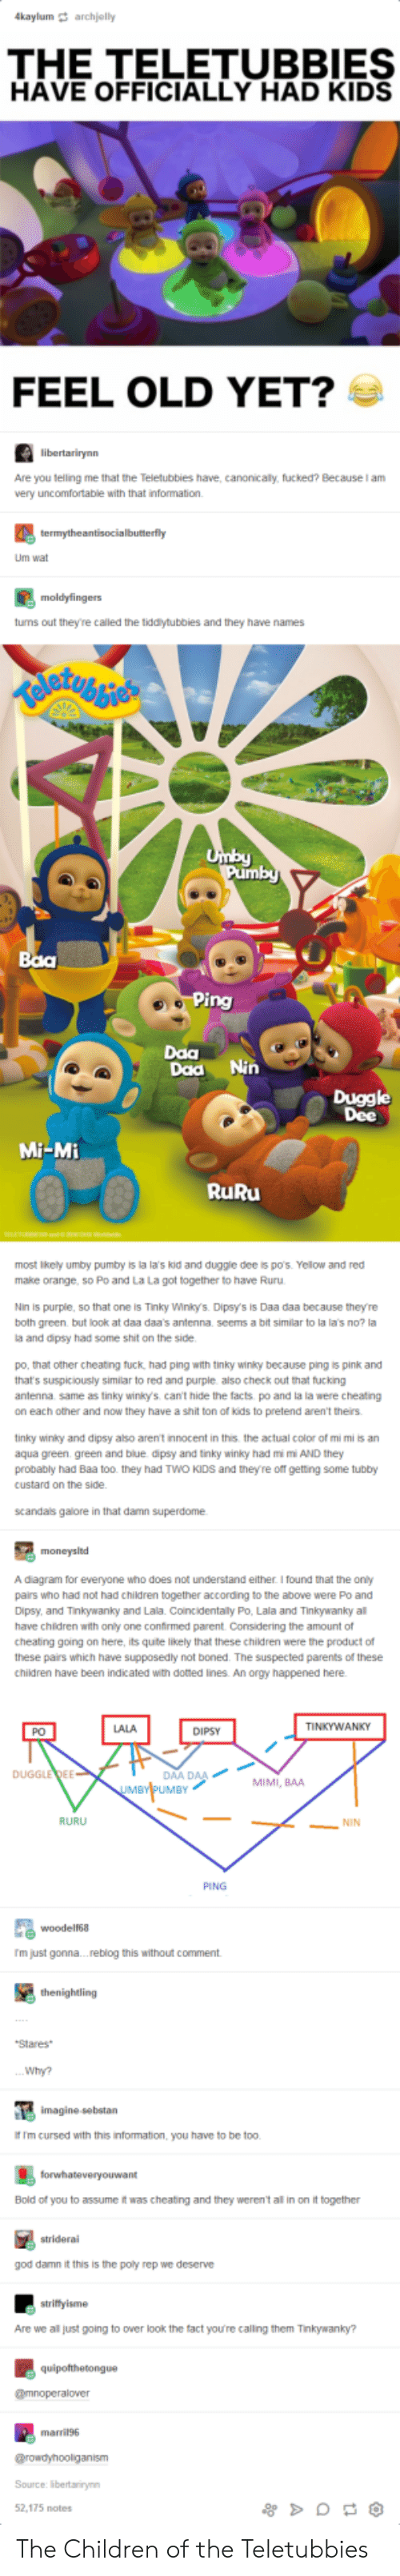 Dipsys: kaylum archjelly  THE TELETUBBIES  HAVE OFFICIALLY HAD KIDS  FEEL OLD YET?  Are you telling me that the Teletubbies have, canonicaly, fucked? Because I am  very uncomfortable with that information.  Um wat  tums out they're called the tiddytubbies and they have names  Daa  Daa Nin  Duggle  Dee  Mi-Mi  RuRu  most ikely umby pumby is la la's kid and duggle dee is p0's. Yelow and red  make orange, so Po and La La got together to have Ruru  Nin is purple, so that one is Tinky Winlo. Dipsys is Daa daa because they're  both green but Ook at daa daas antenna seems a bit similar to la la's no? !  a and dipsy had some shit on the side  po, that other cheating tuck, had ping with tinky winky because ping is pink and  that's suspiciously similar to red and purple also check out that fucking  antenna same as tinky winky's can't hide the facts po and la la were cheating  on each other and now they have a shit ton of kids to pretend aren't theirs  tinky winiky and dipsy also arent innocent in this the actual color of mi mi is an  aqua green. green and blue dipsy and tinky winky had mi m AND they  probably had Baa too. they had TWO KIDs and theyre off getting some tubby  custard on the side  scandas galore in that damn superdome  A diagram for everyone who does not understand either I found that the oniy  pairs who had not had children together according to the above were Po and  Dipsy, and Tinkywanky and Lala. Coincidentaily Po, Lala and Tinkywanky al  have chidren with only one confirmed parent. Considering the amount of  cheatng going on here, its quite likely that these children were the product of  these pairs which have supposedly not boned. The suspected parents of these  children have been indicated with doted ines. An orgy happened here  LALA  TINKYWANKY  PO  DIPSY  AA DAA  UMBY  DUGGLEDEE  MIMI, BAA  RURU  NIN  PING  尾woodens.  m just gonna....reblog this without comment  Stares  Why?  f Im cursed with this information, you have to be too.  Bold of you to assume 